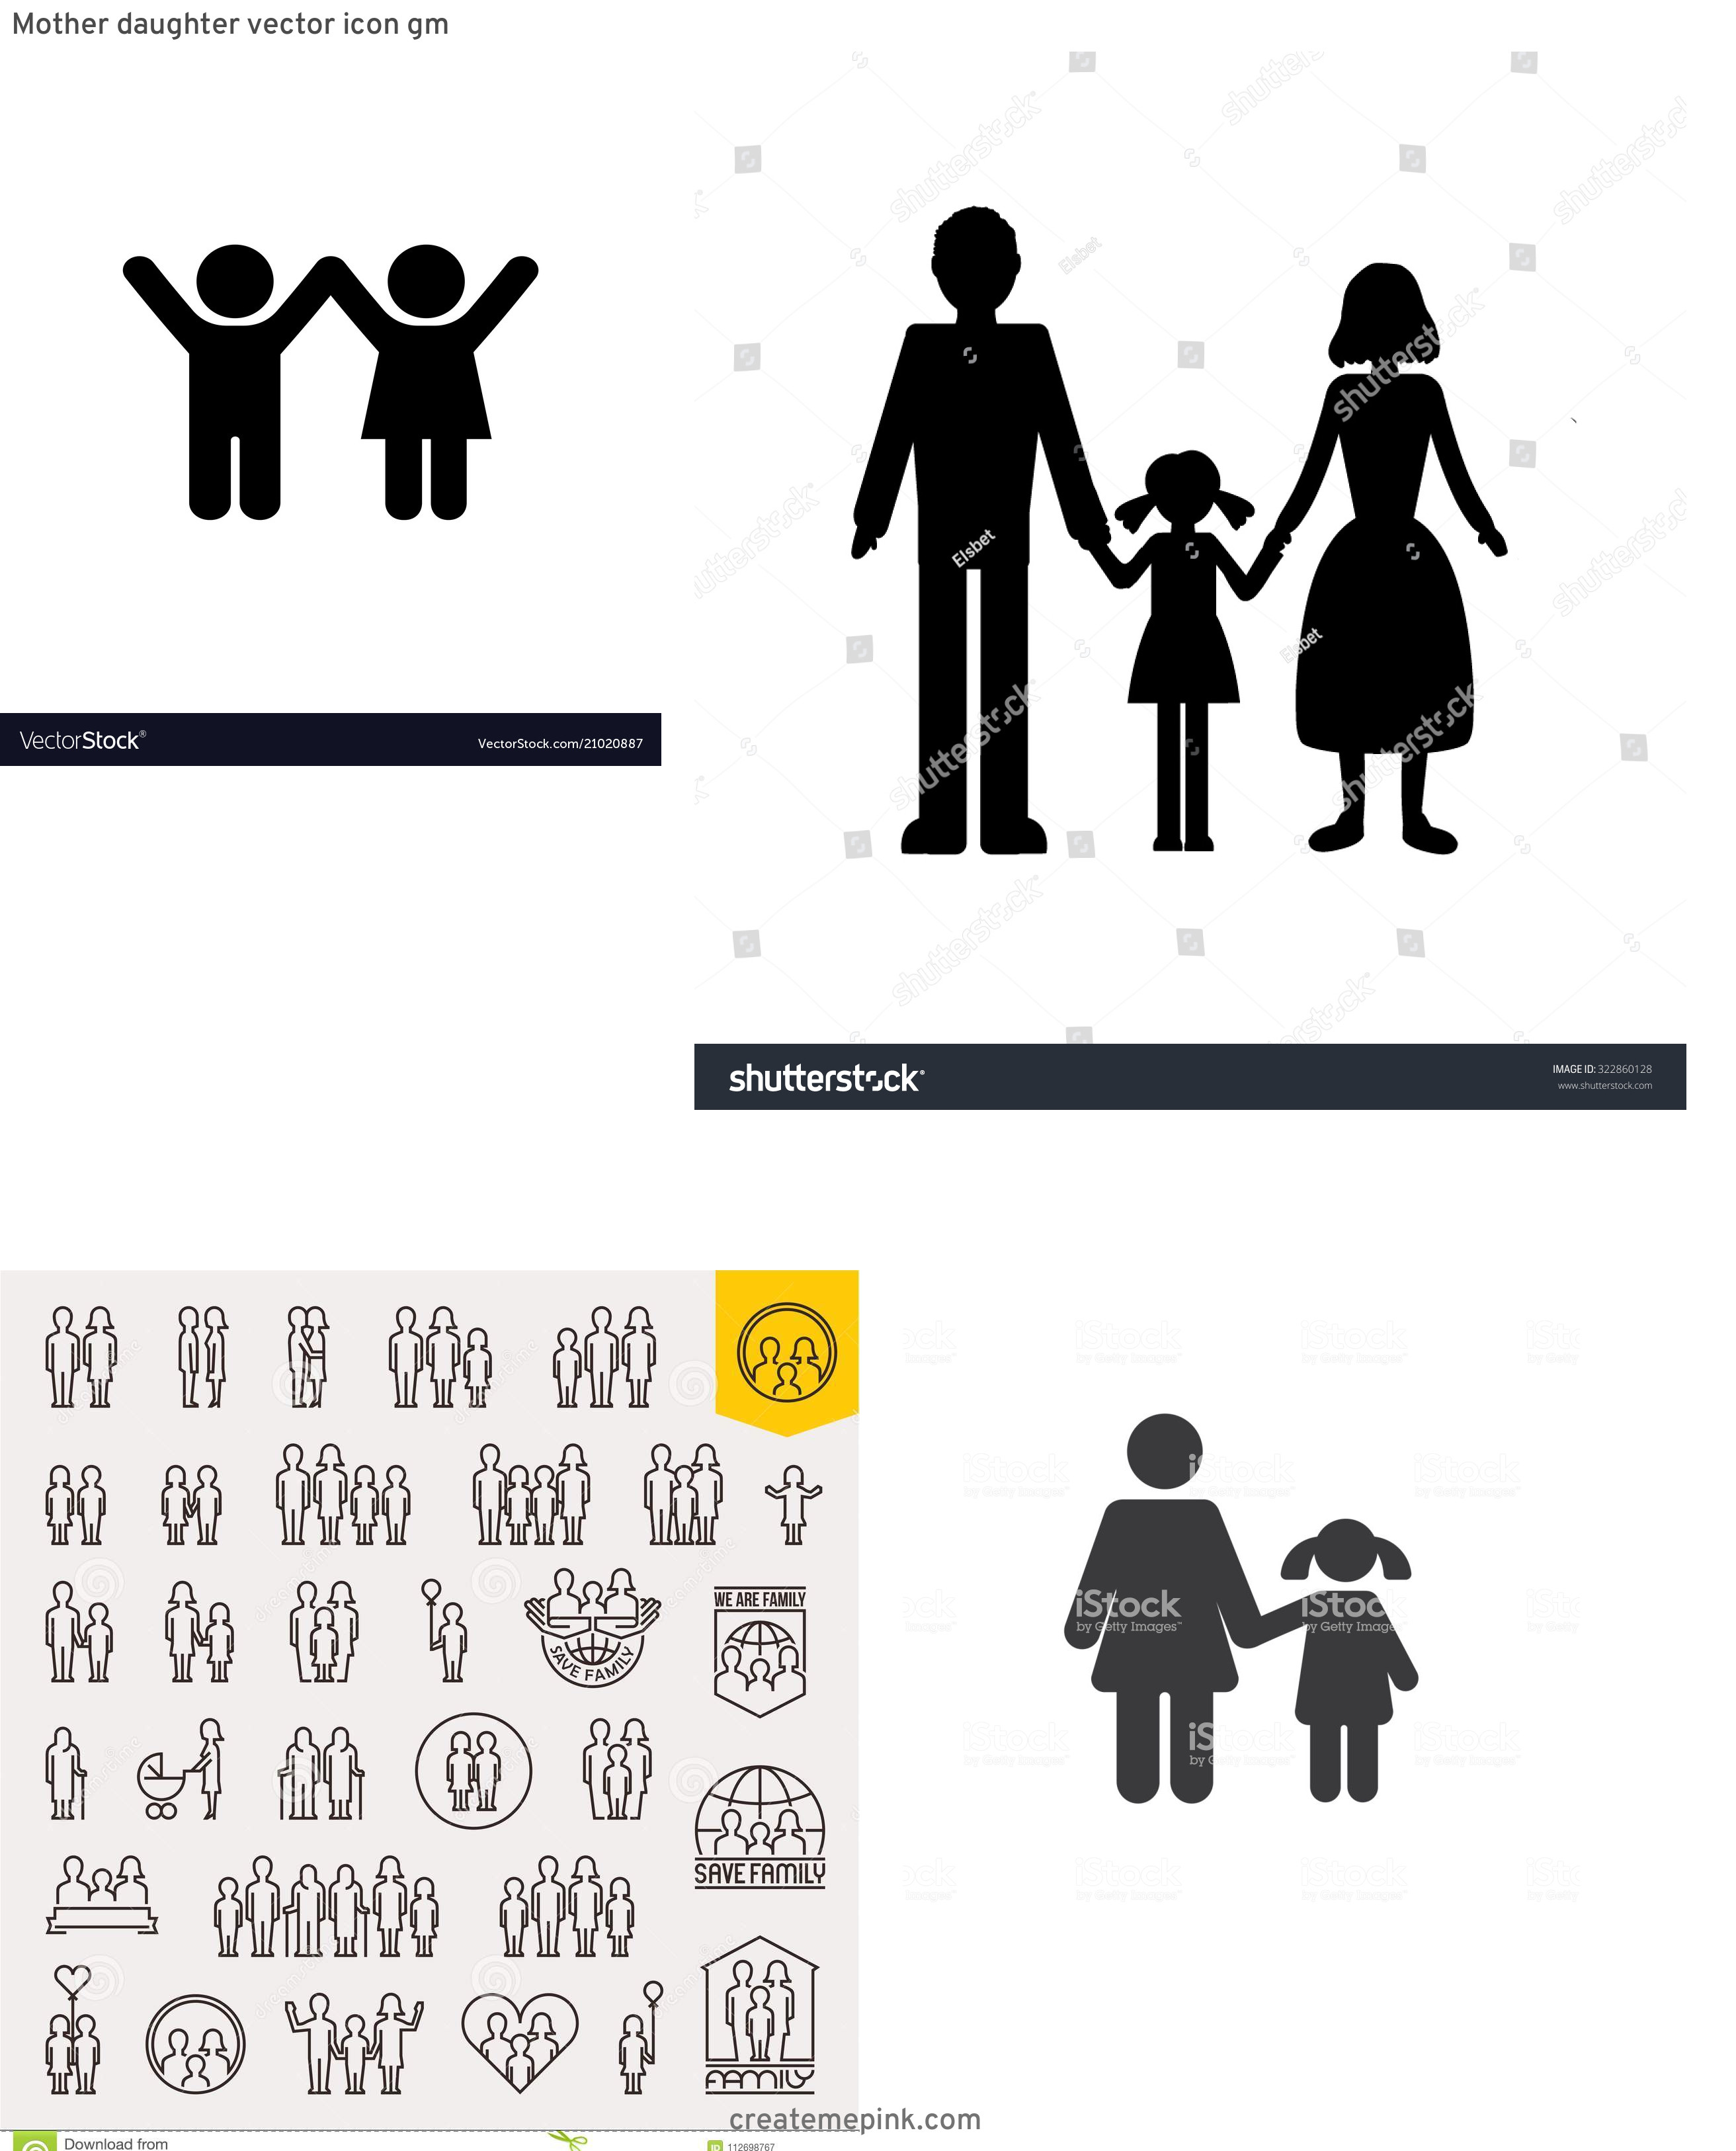 Daughter Vector Icons: Mother Daughter Vector Icon Gm